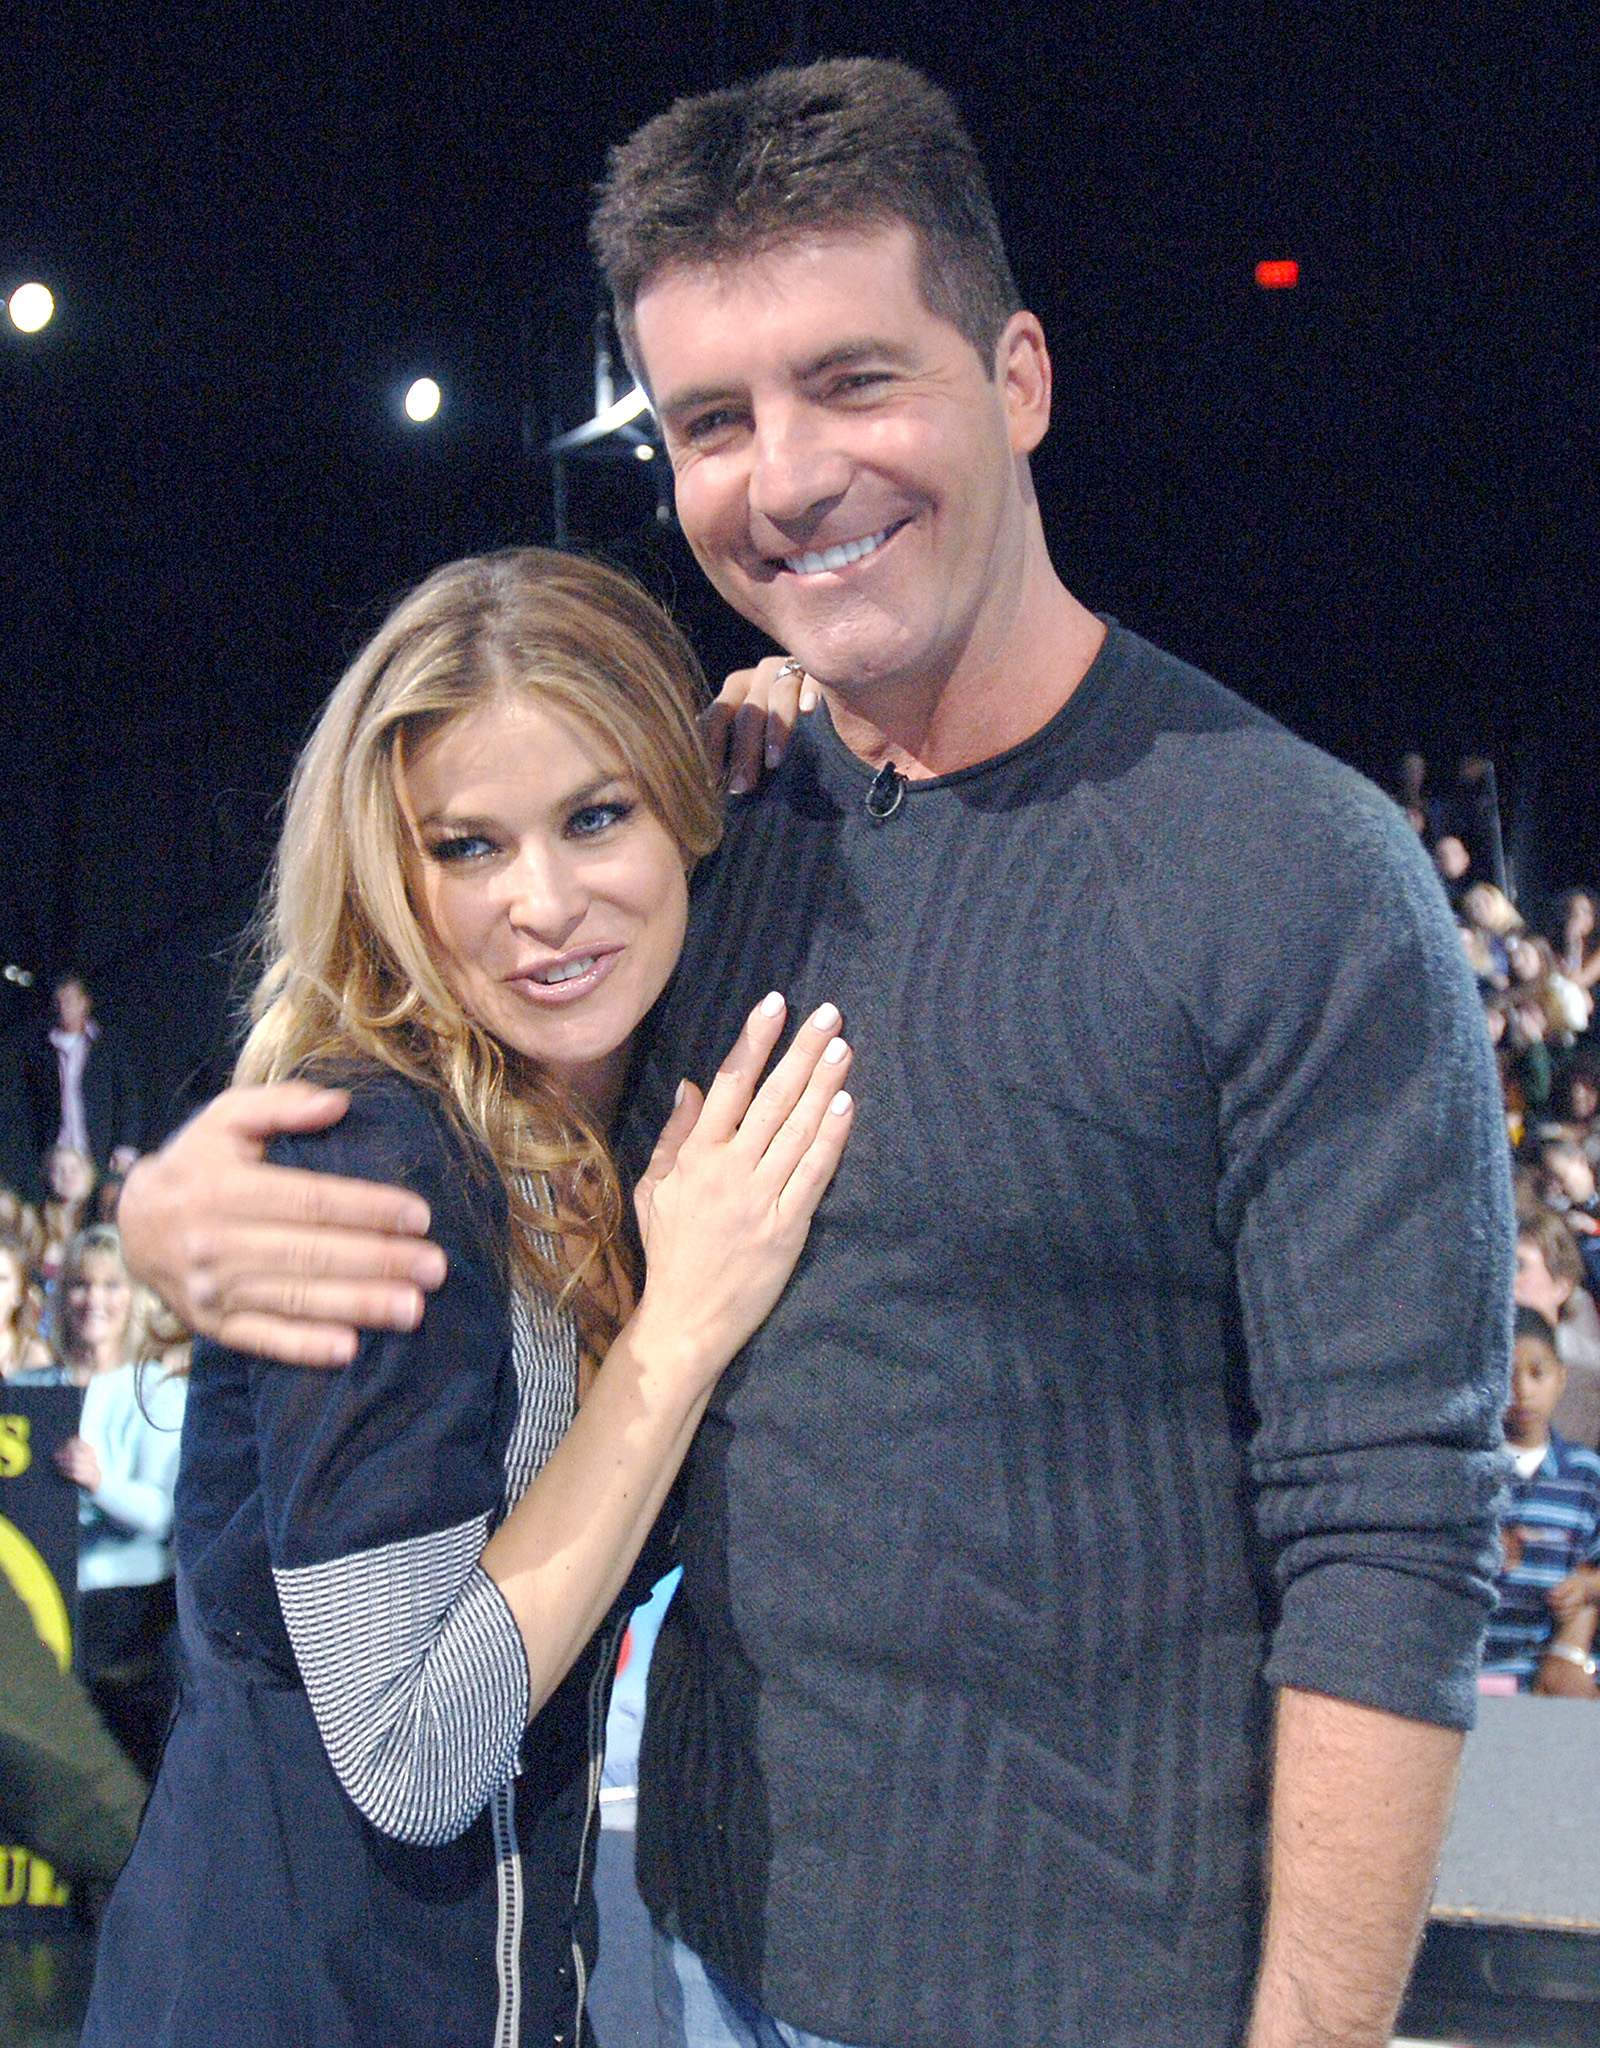 Simon Cowell and Carmen Electra (Ray Mickshaw/WireImage)